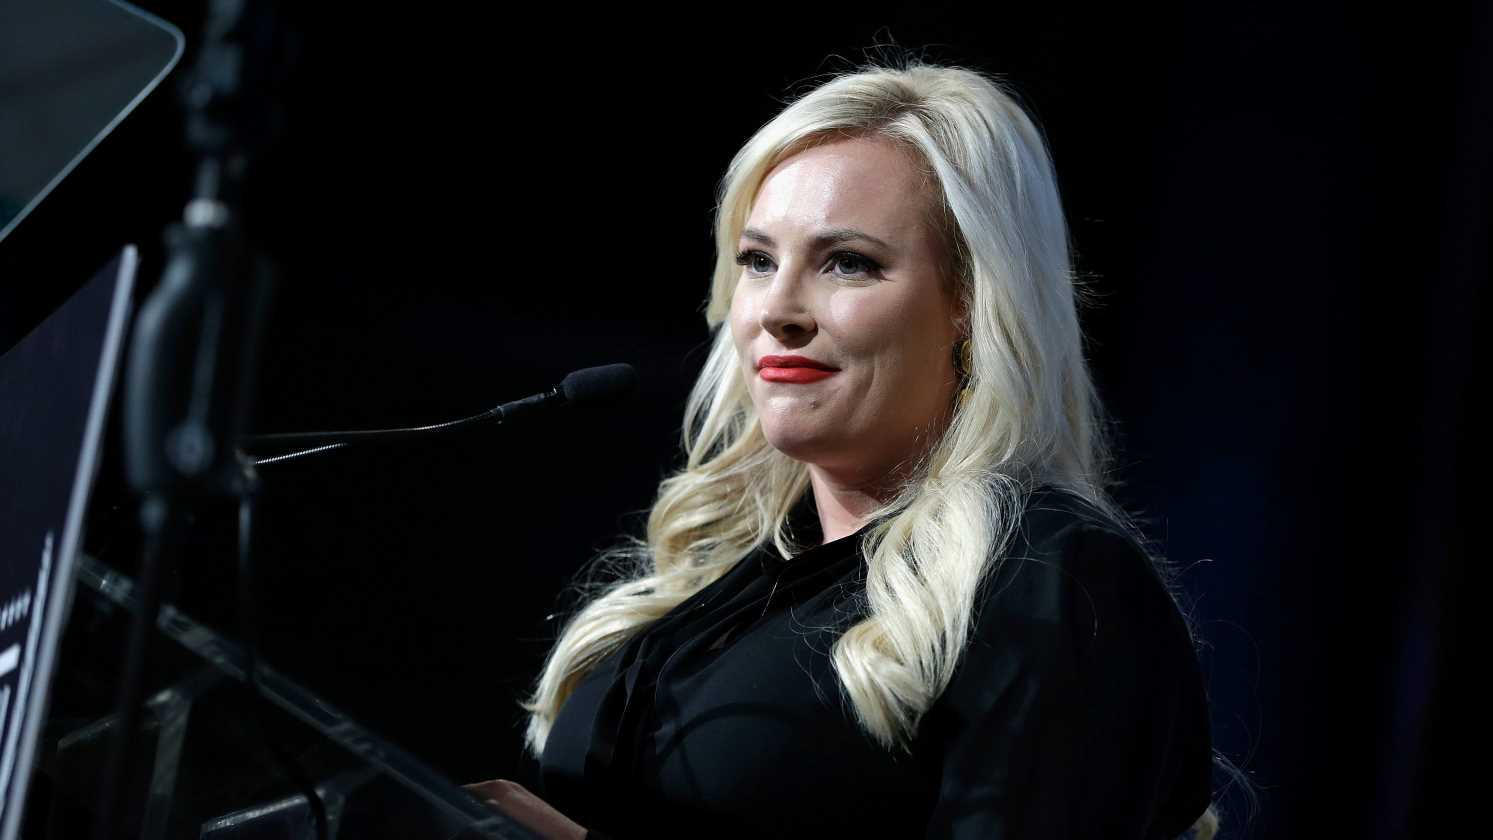 Meghan McCain calls out Ivanka Trump and Jared Kushner: 'Where are you in this?'